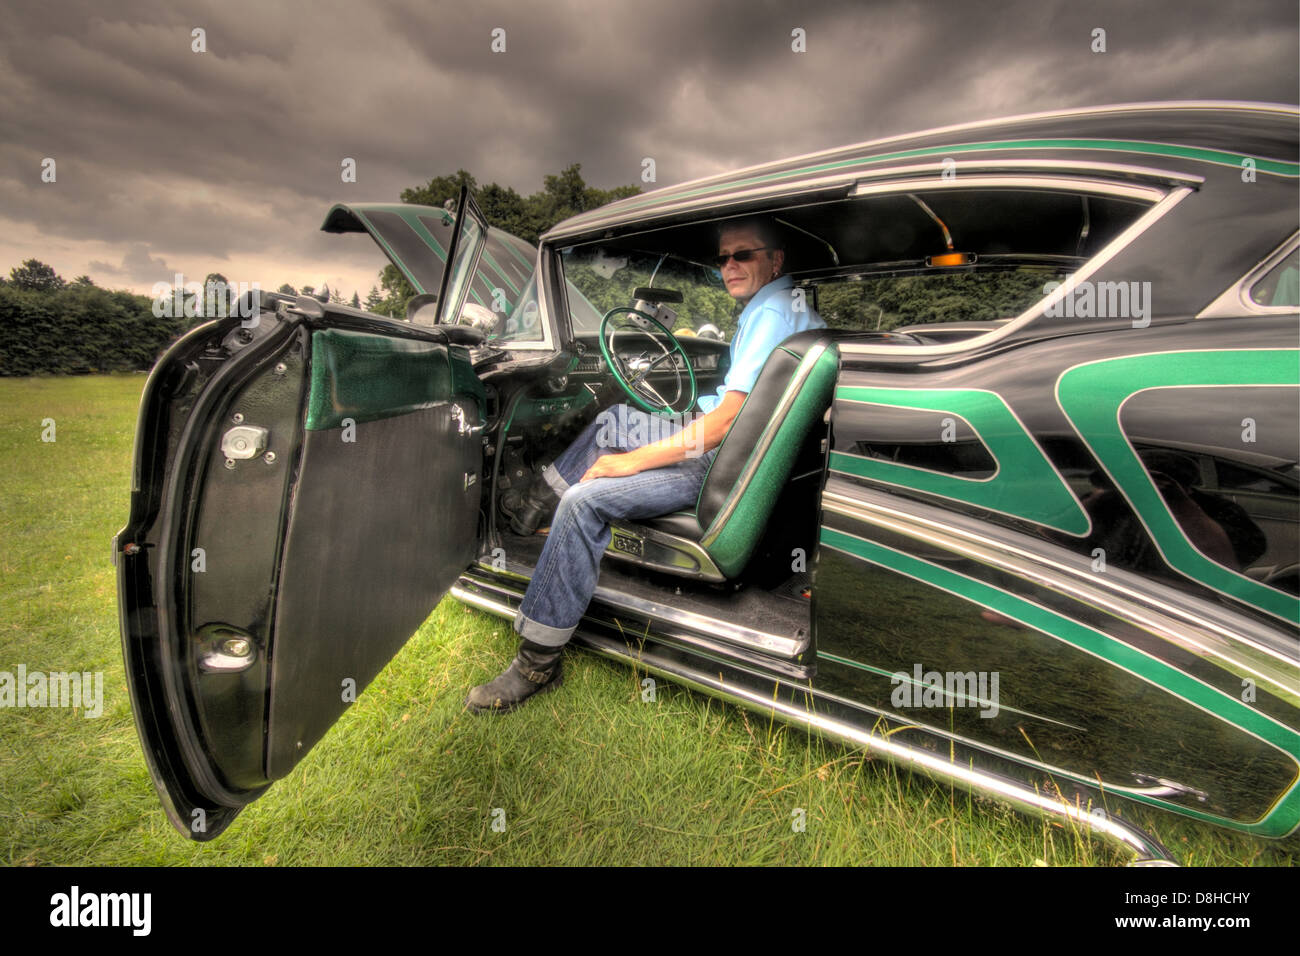 and,automobile,coche,cars,automobiles,old,57,Weatherby,with,his,award,winning,American,1957,classic,car,Kutsford,tatton,park,NT,property,Cheshire,England,UK,united,Kingdom,GB,great,Britain,American,U.S.,man,at,the,wheel,steering,hot,rod,hotrod,owner,hobby,interest,passion,vehicle,vehicles,show,gotonysmith,Buick,division,of,General,Motors,roadmaster,Cadillac,and,after 1940,senior,Oldsmobiles,cars,Special,Riviera,coupe,sedan,Buy Pictures of,Buy Images Of